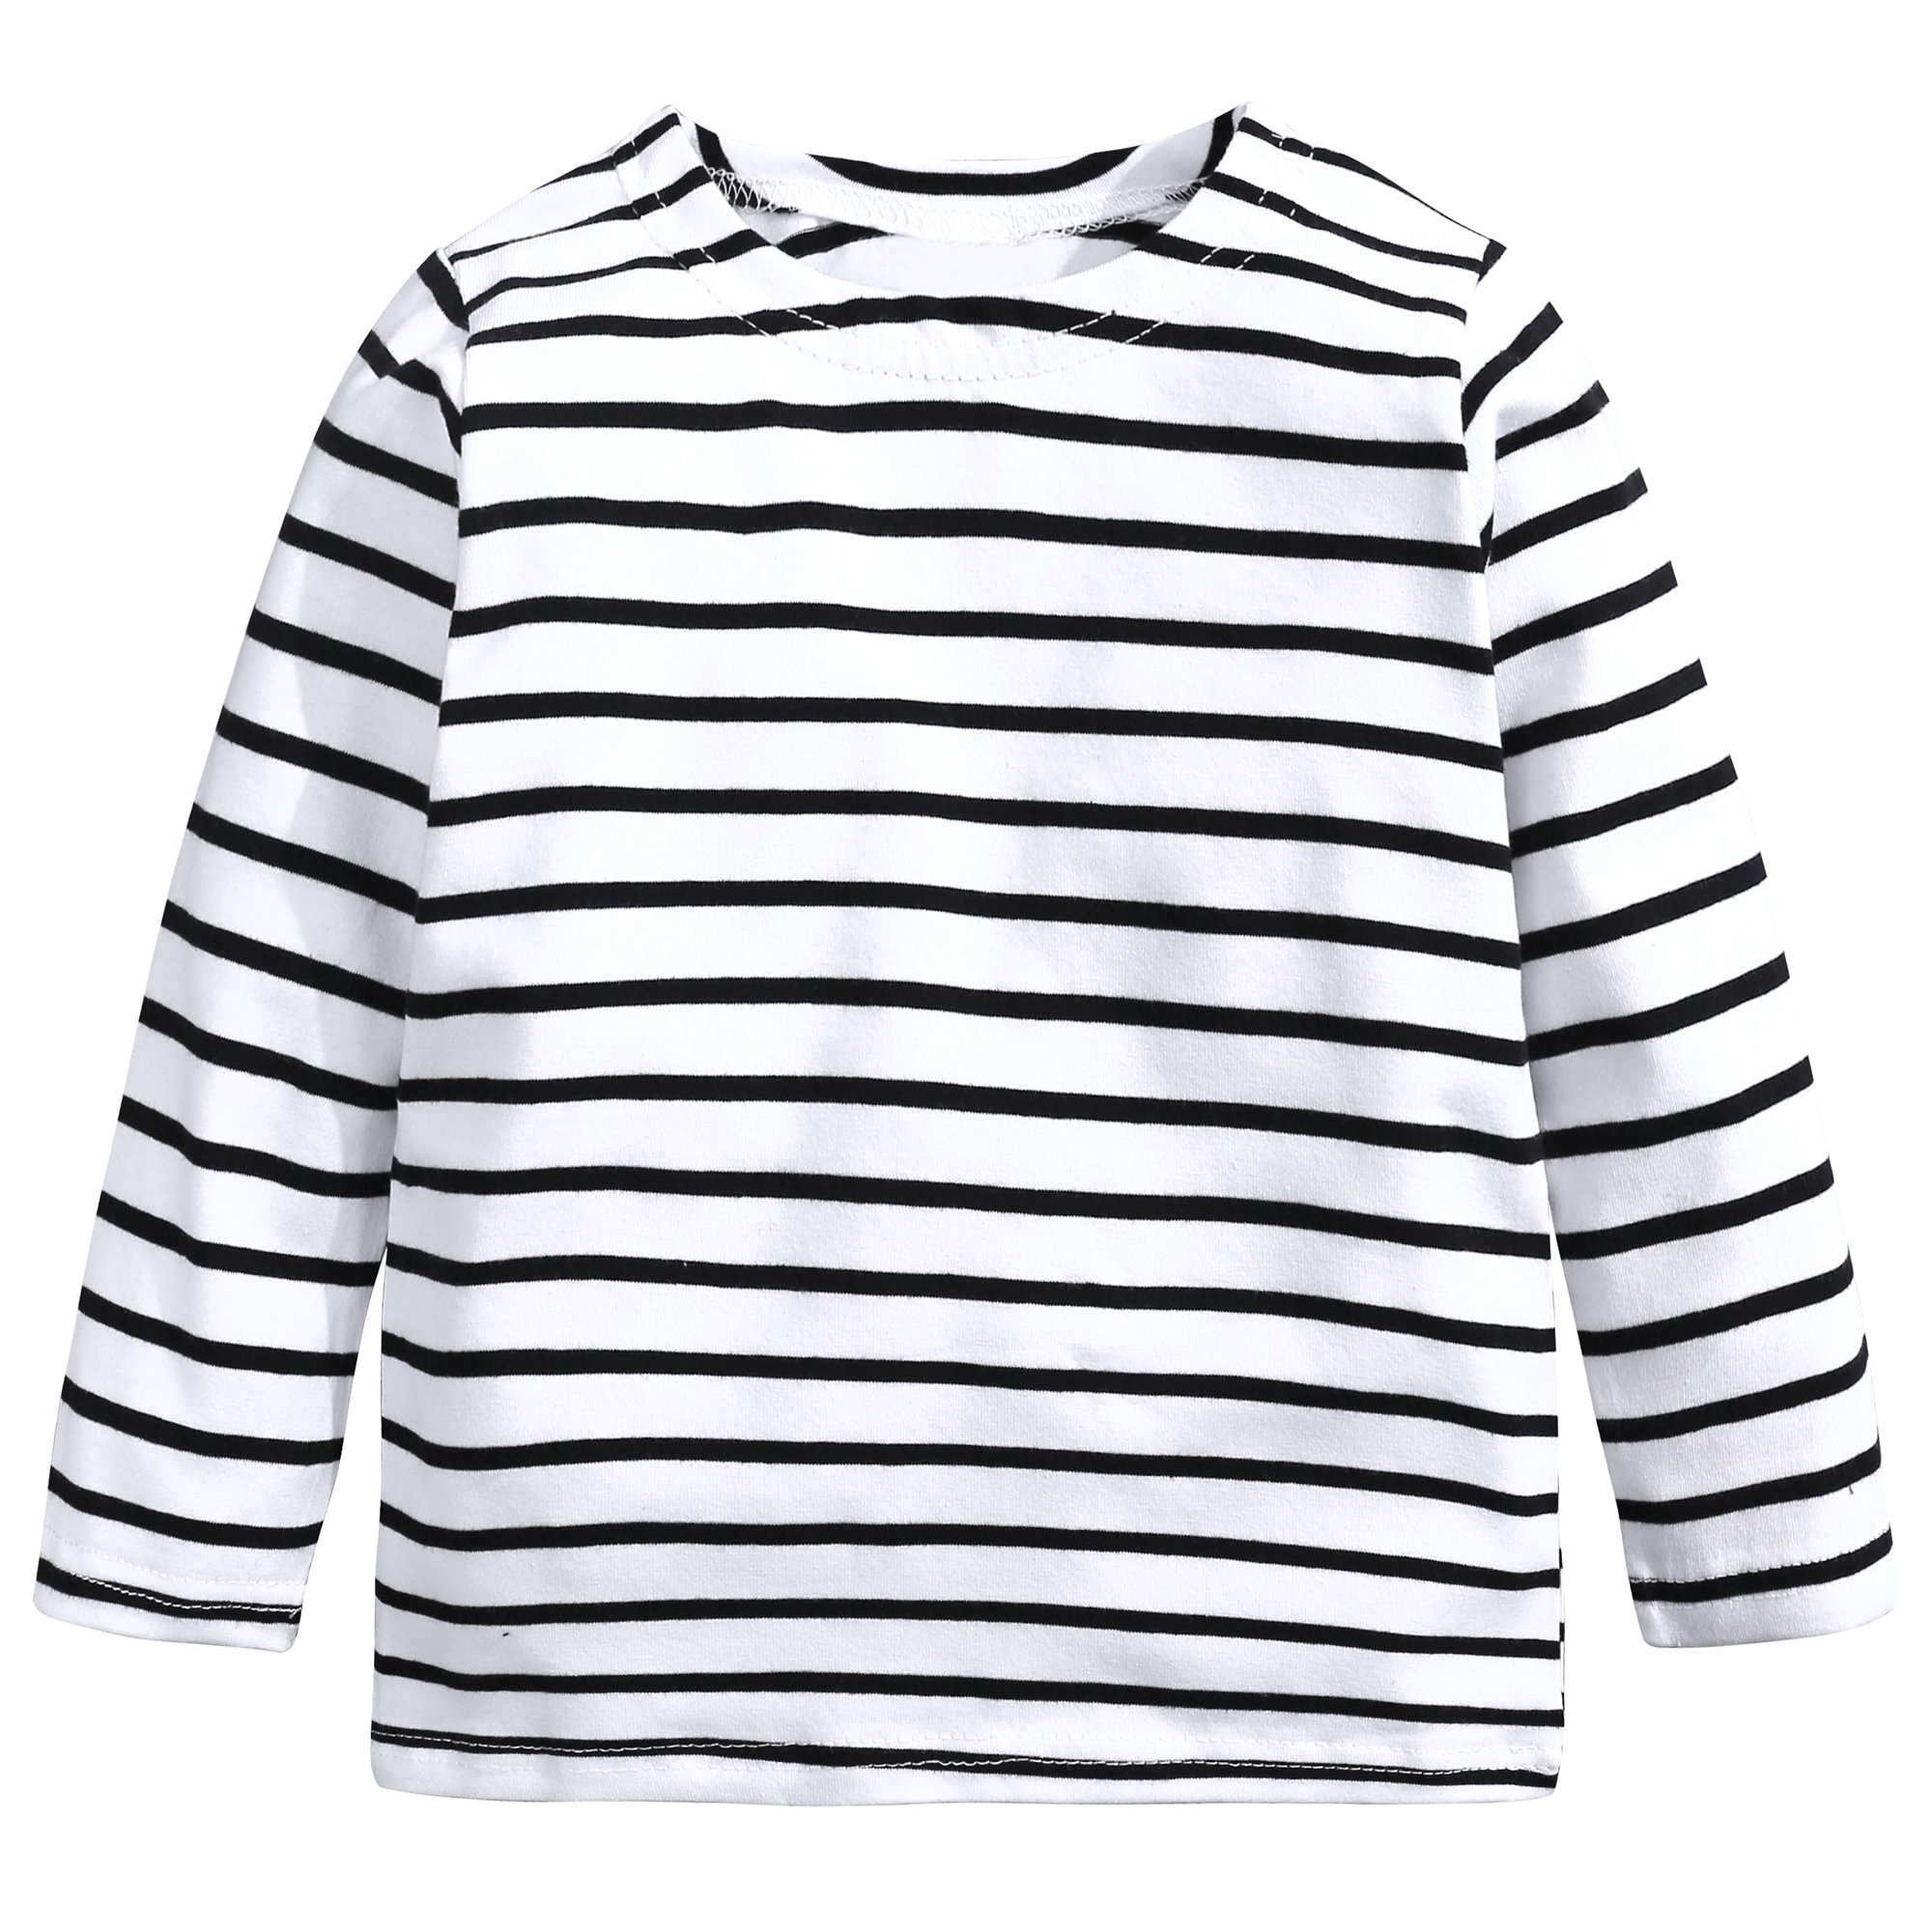 Baby Kids Boys Girls Star Striped Long Sleeve O Rong BFF T-Shirt Tee,White-striped,80(2T) by Mary ye